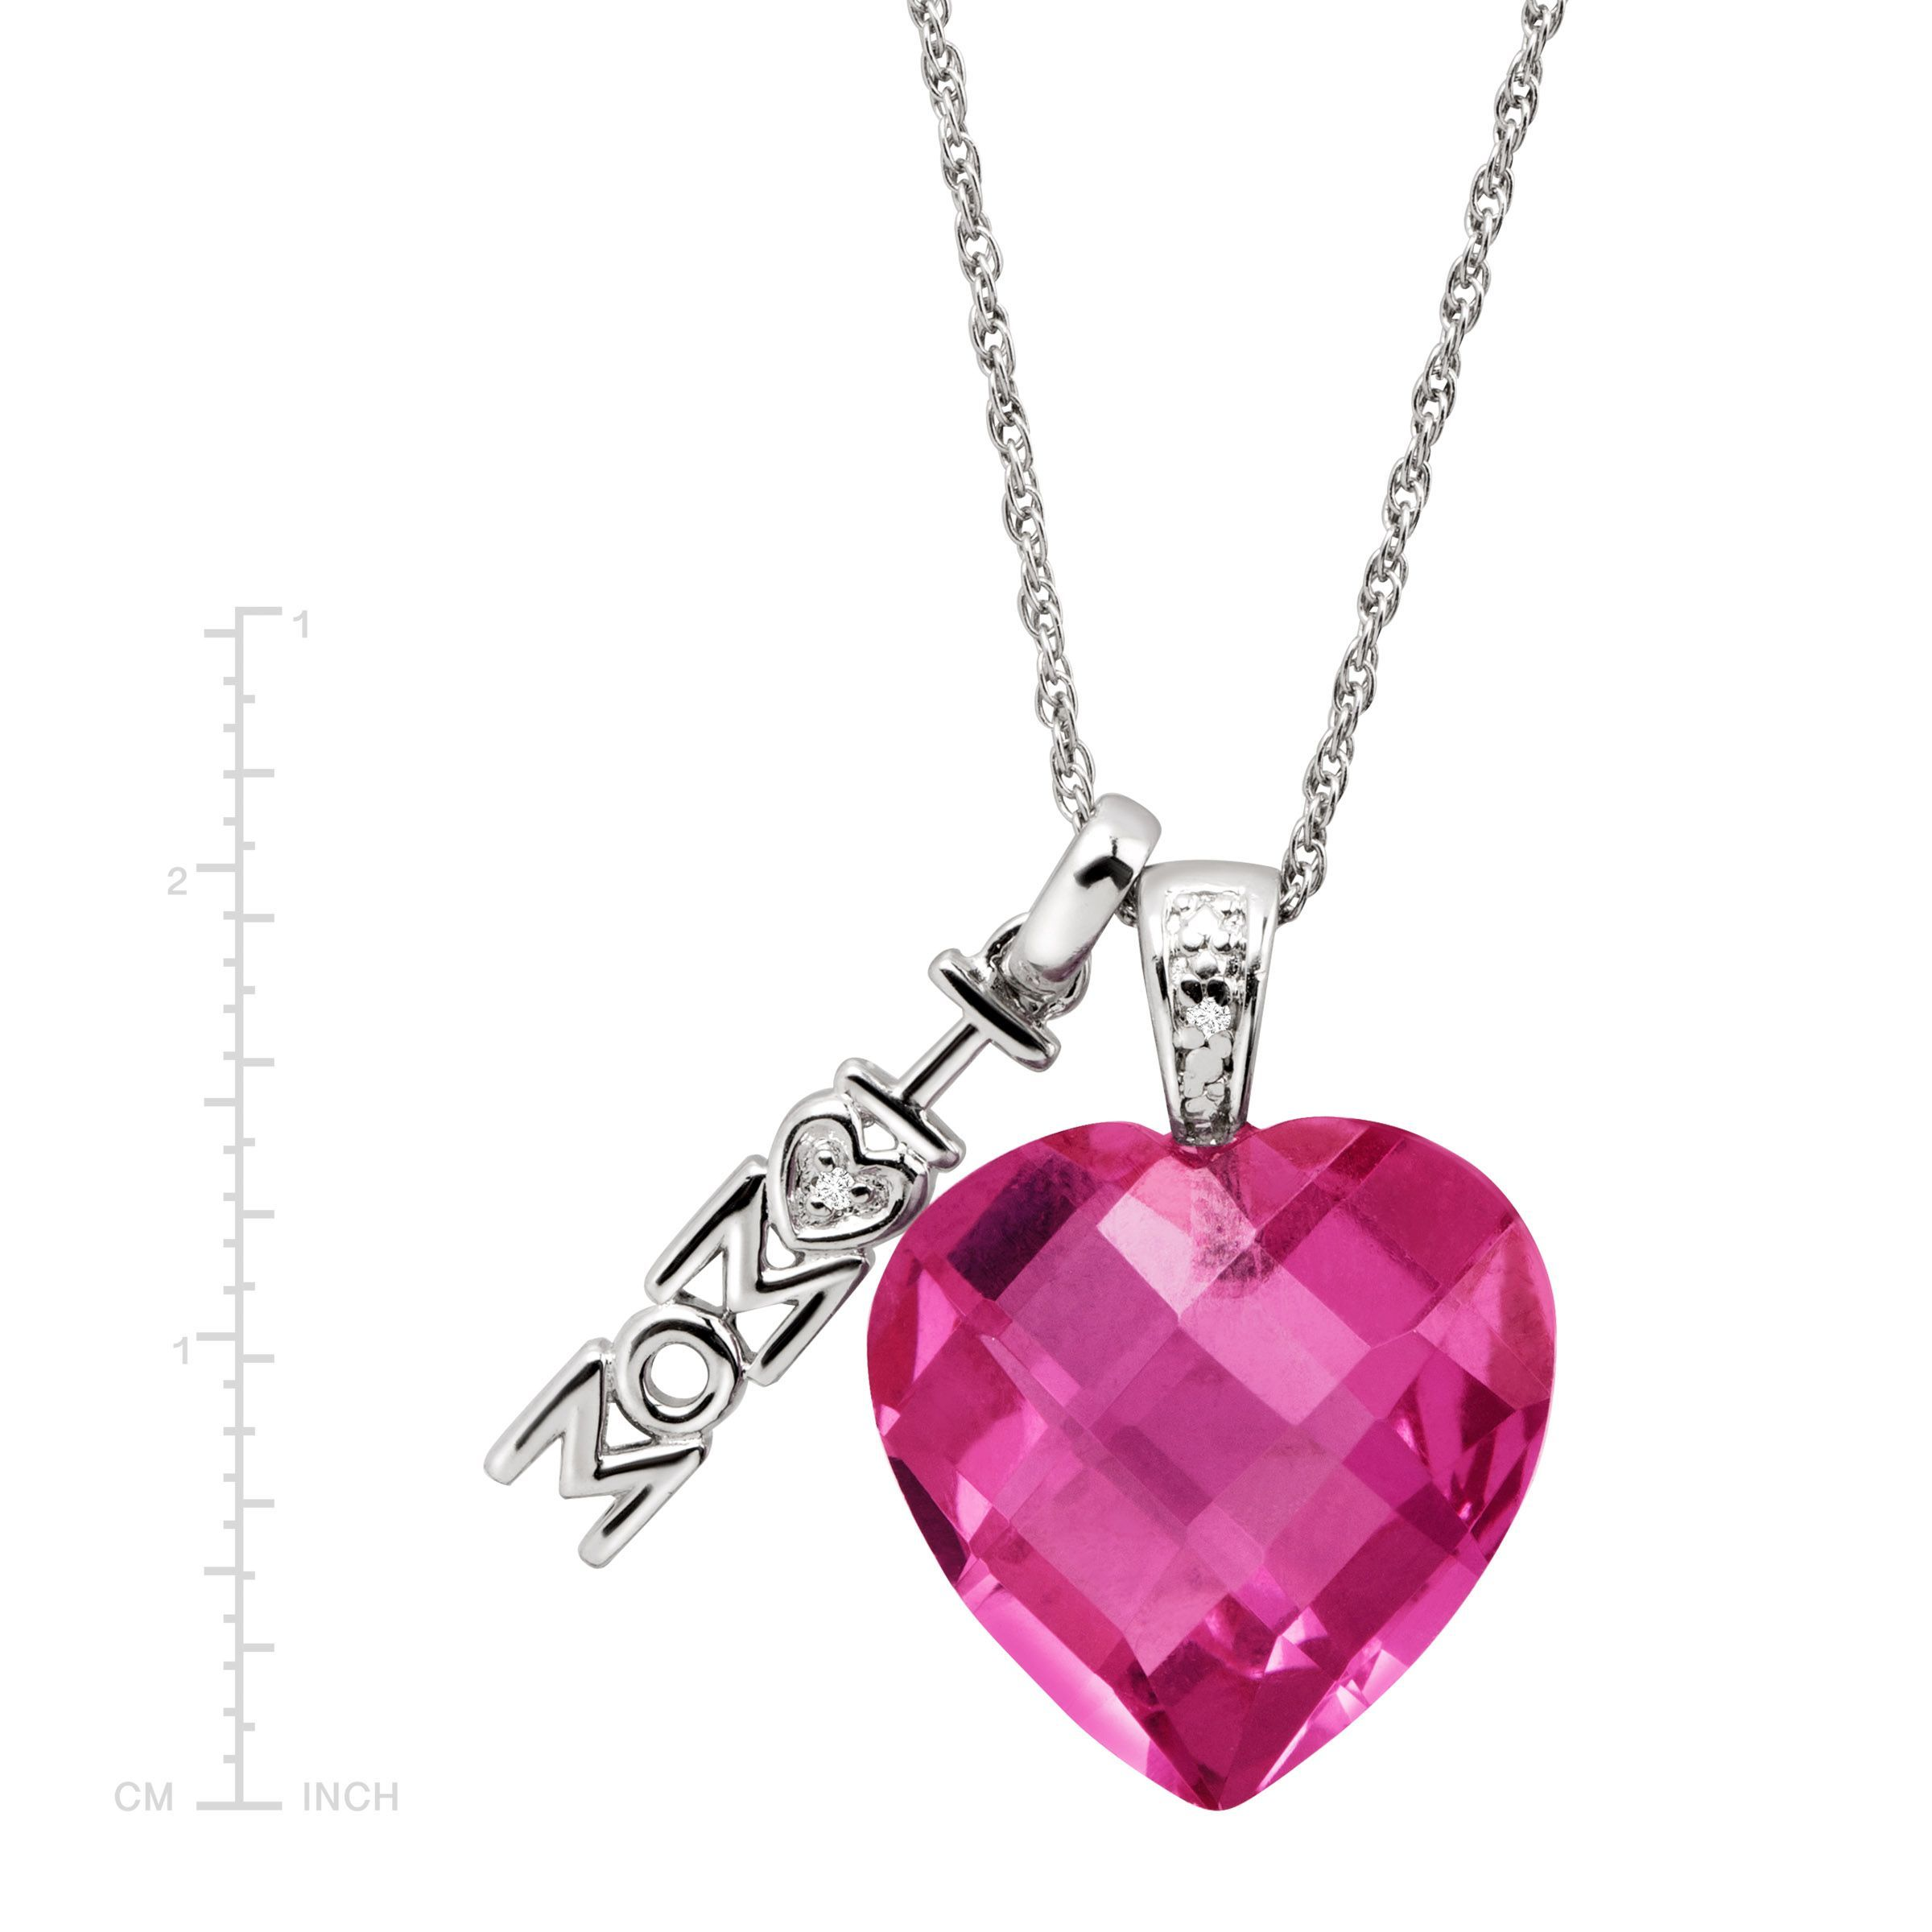 heart pendant pink gemstone cut chain created sterling pendants silver with sapphire necklace